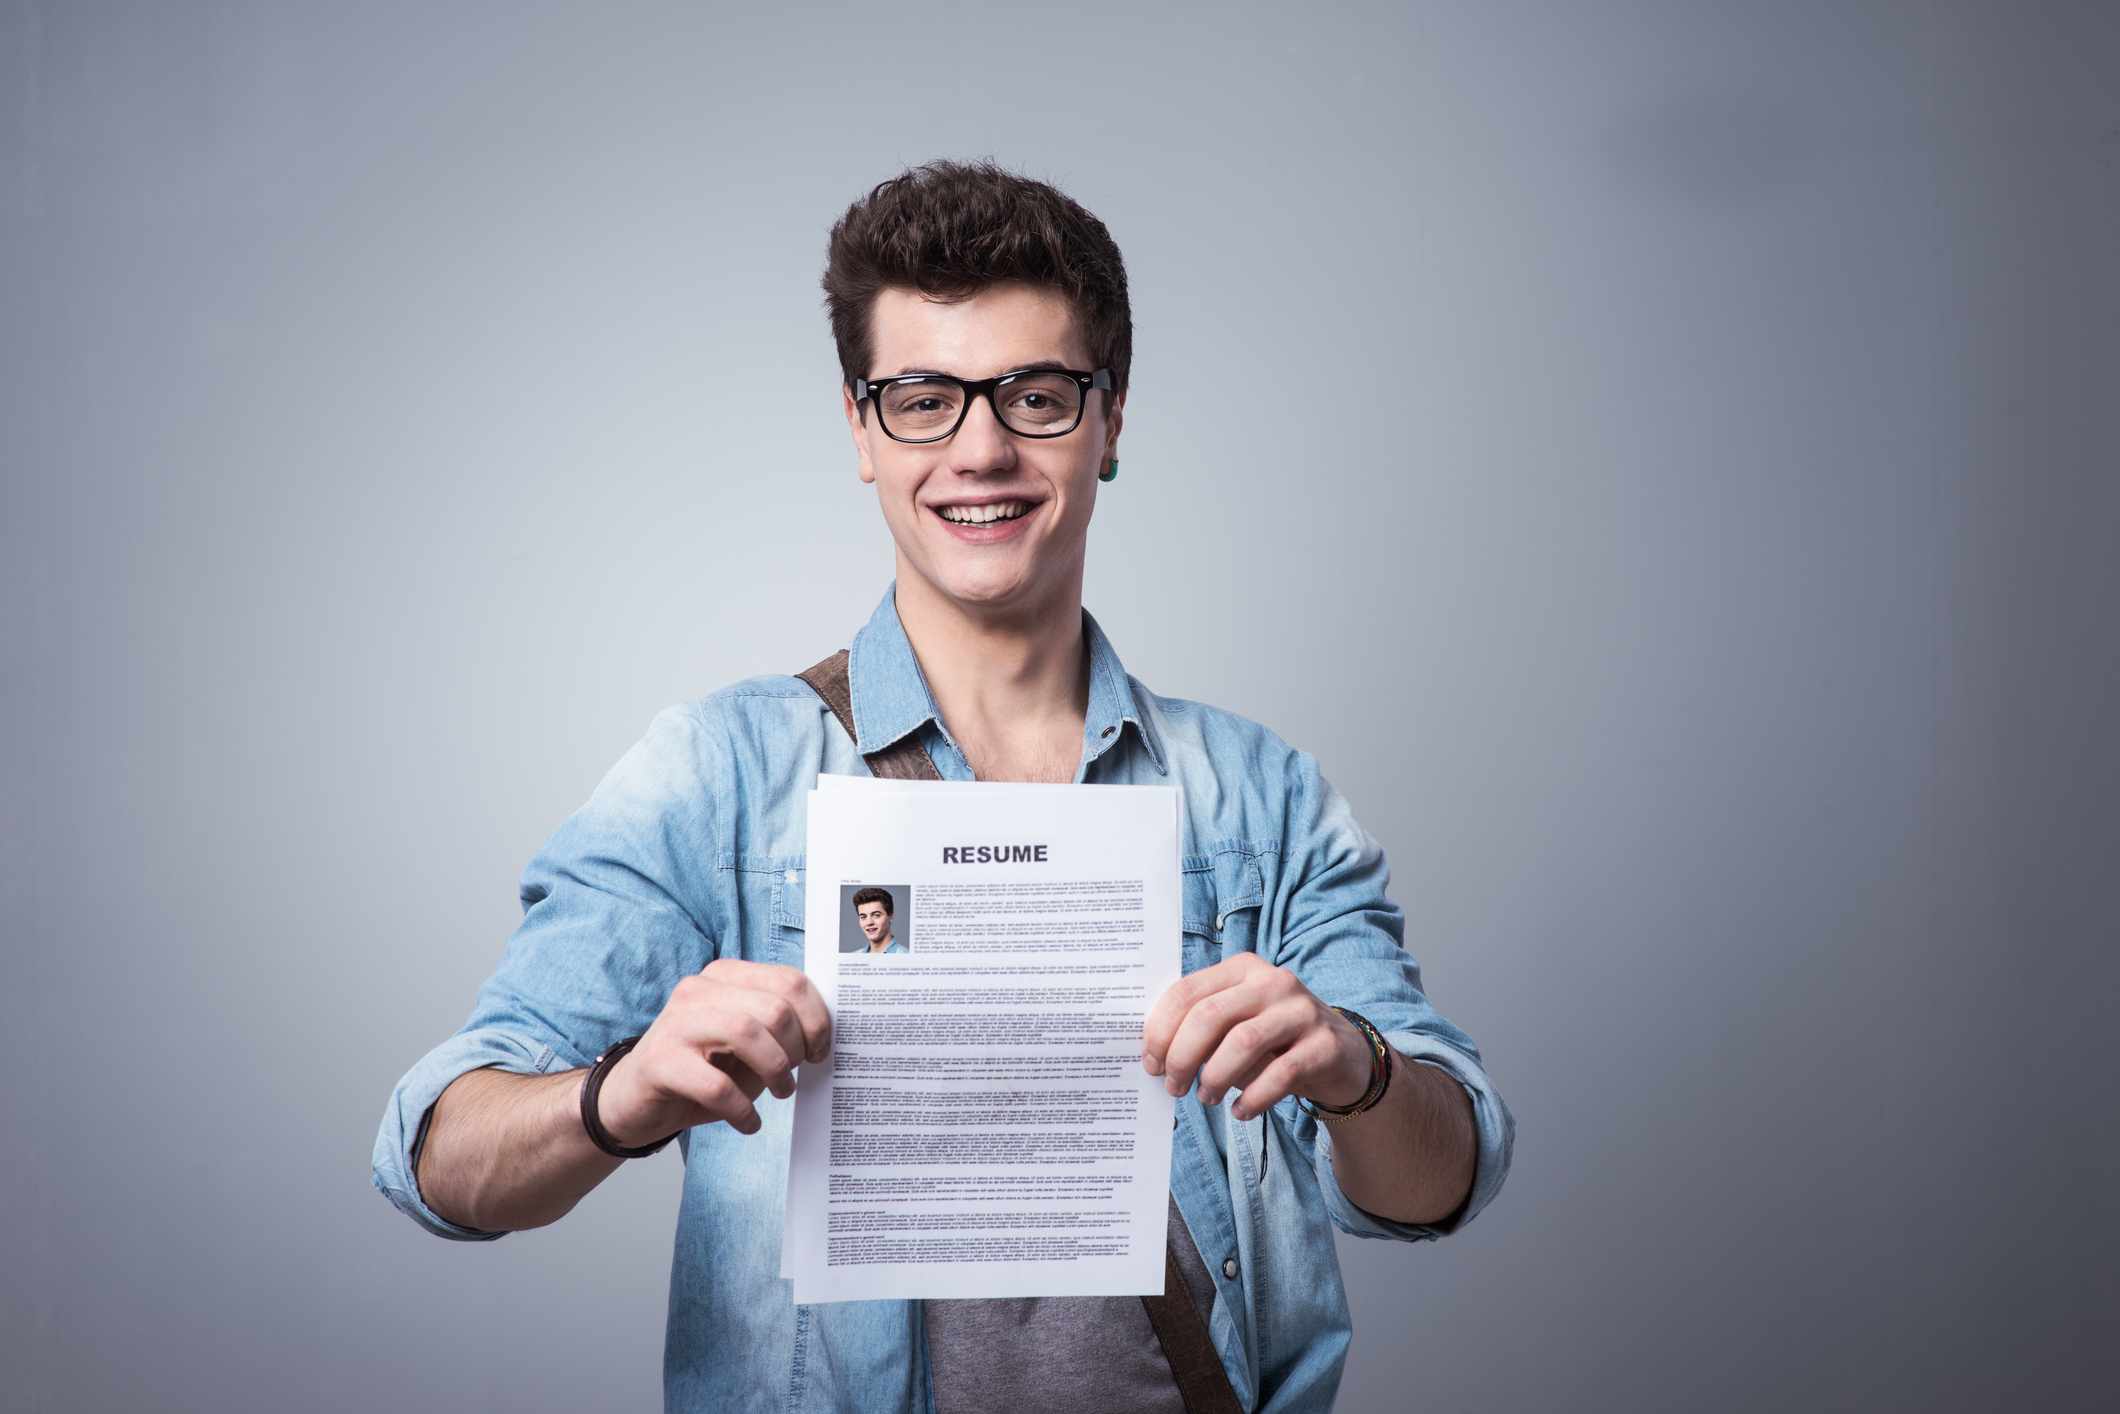 Young Smiling Man Holding His Resume Applying For A Job  Resume Edge